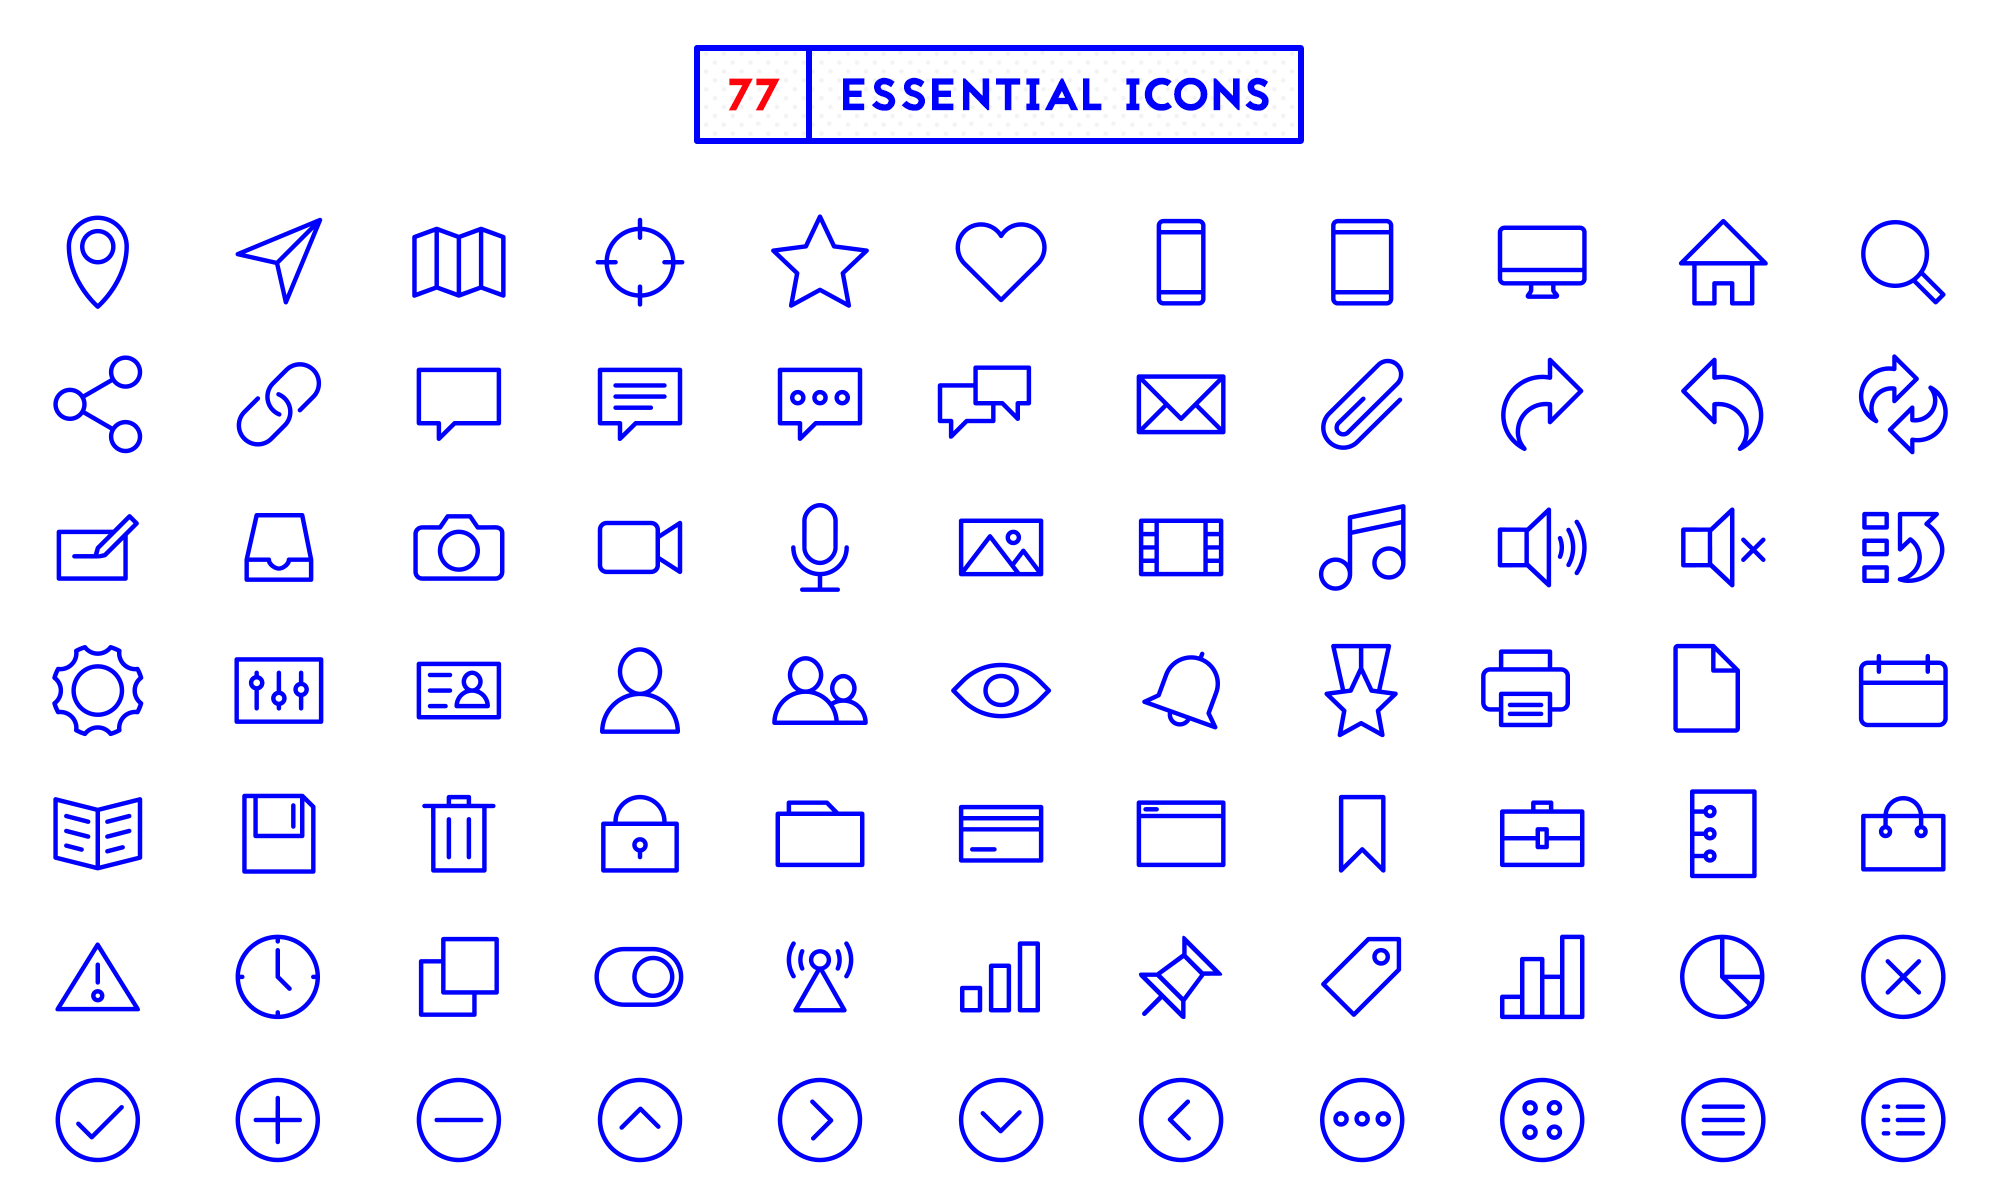 All of the 77 essential icons